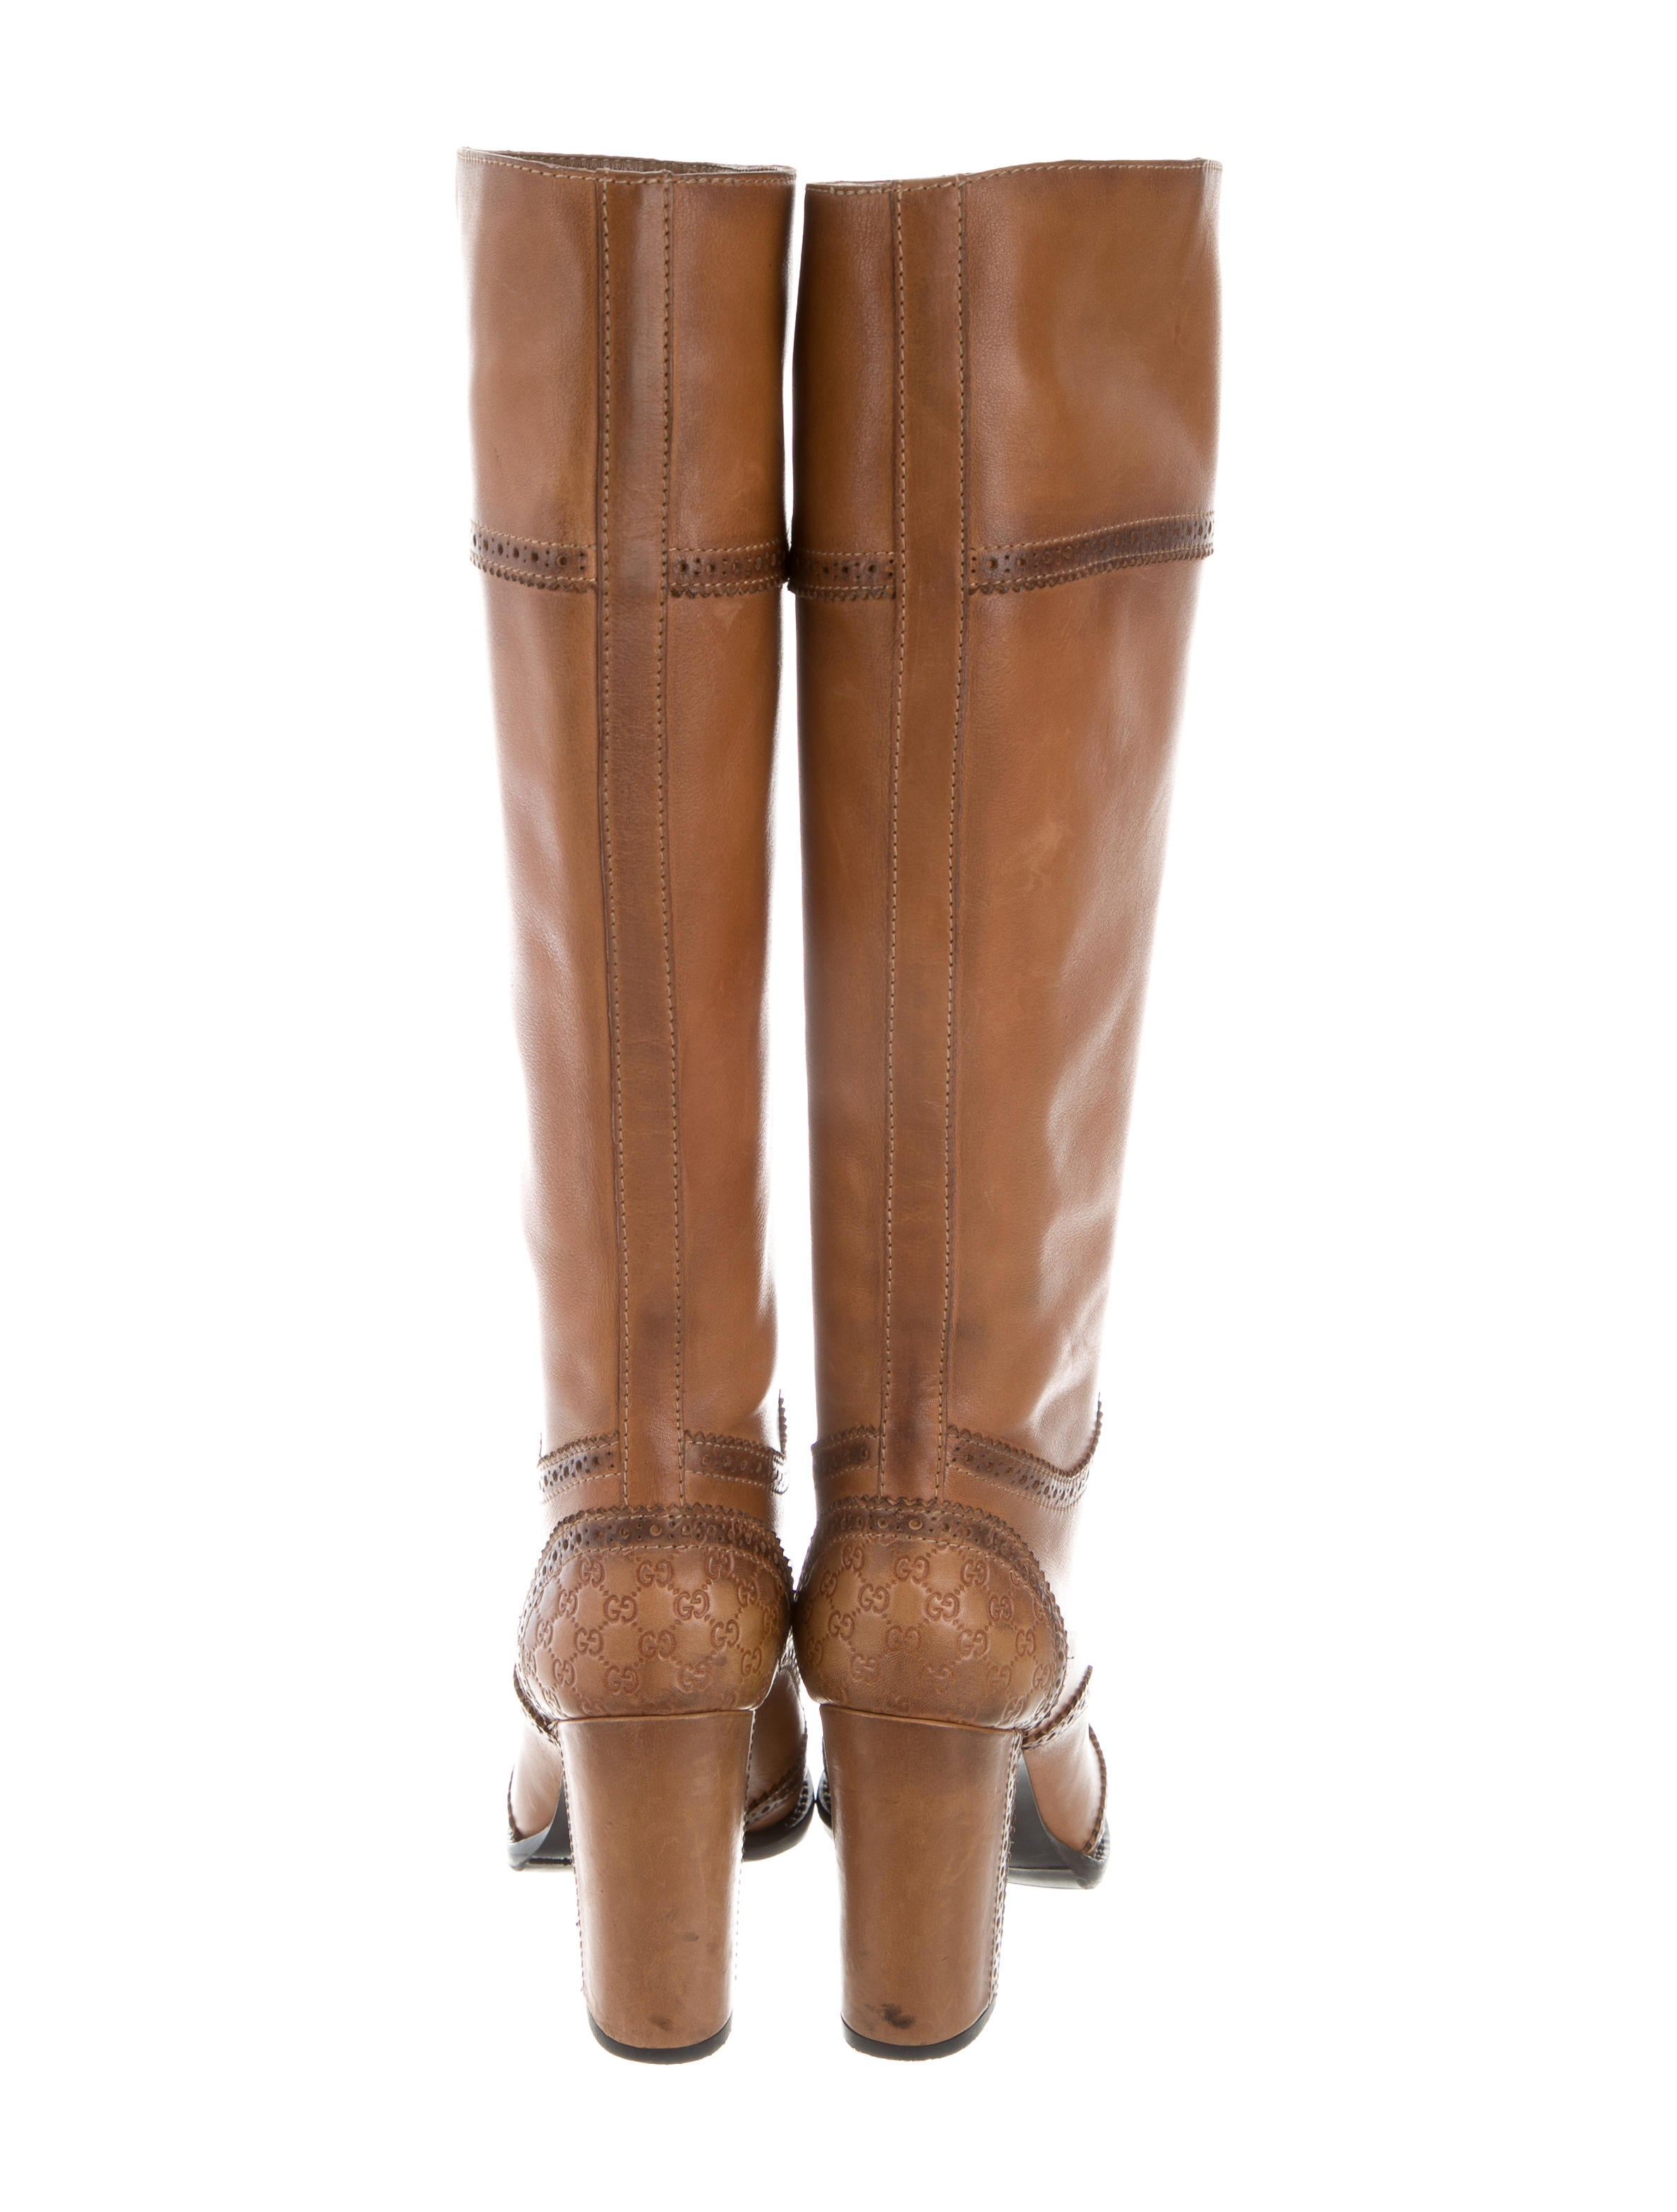 Leather Knee High Boots Sale: Save Up to 75% Off! Shop allshop-eqe0tr01.cf's huge selection of Leather Knee High Boots - Over styles available. FREE Shipping & Exchanges, and a % price guarantee!